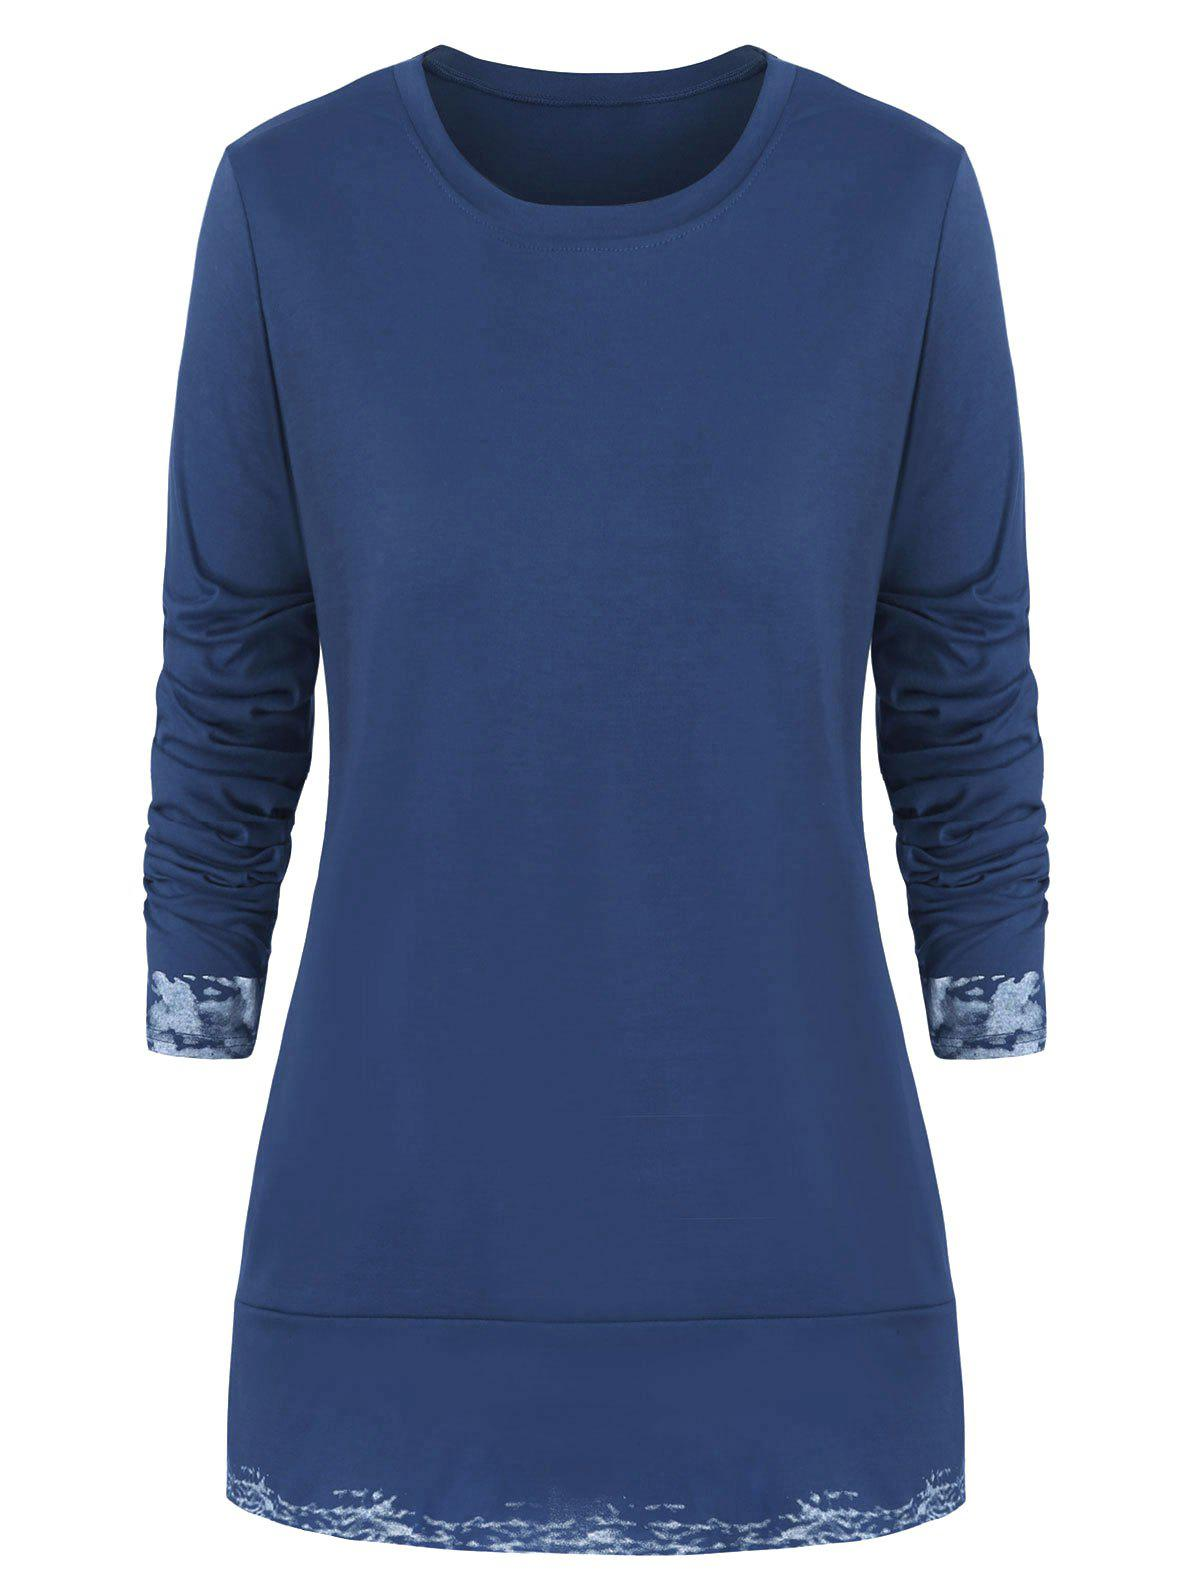 Plus Size Slits Printed Round Neck Tee - BLUE 4X